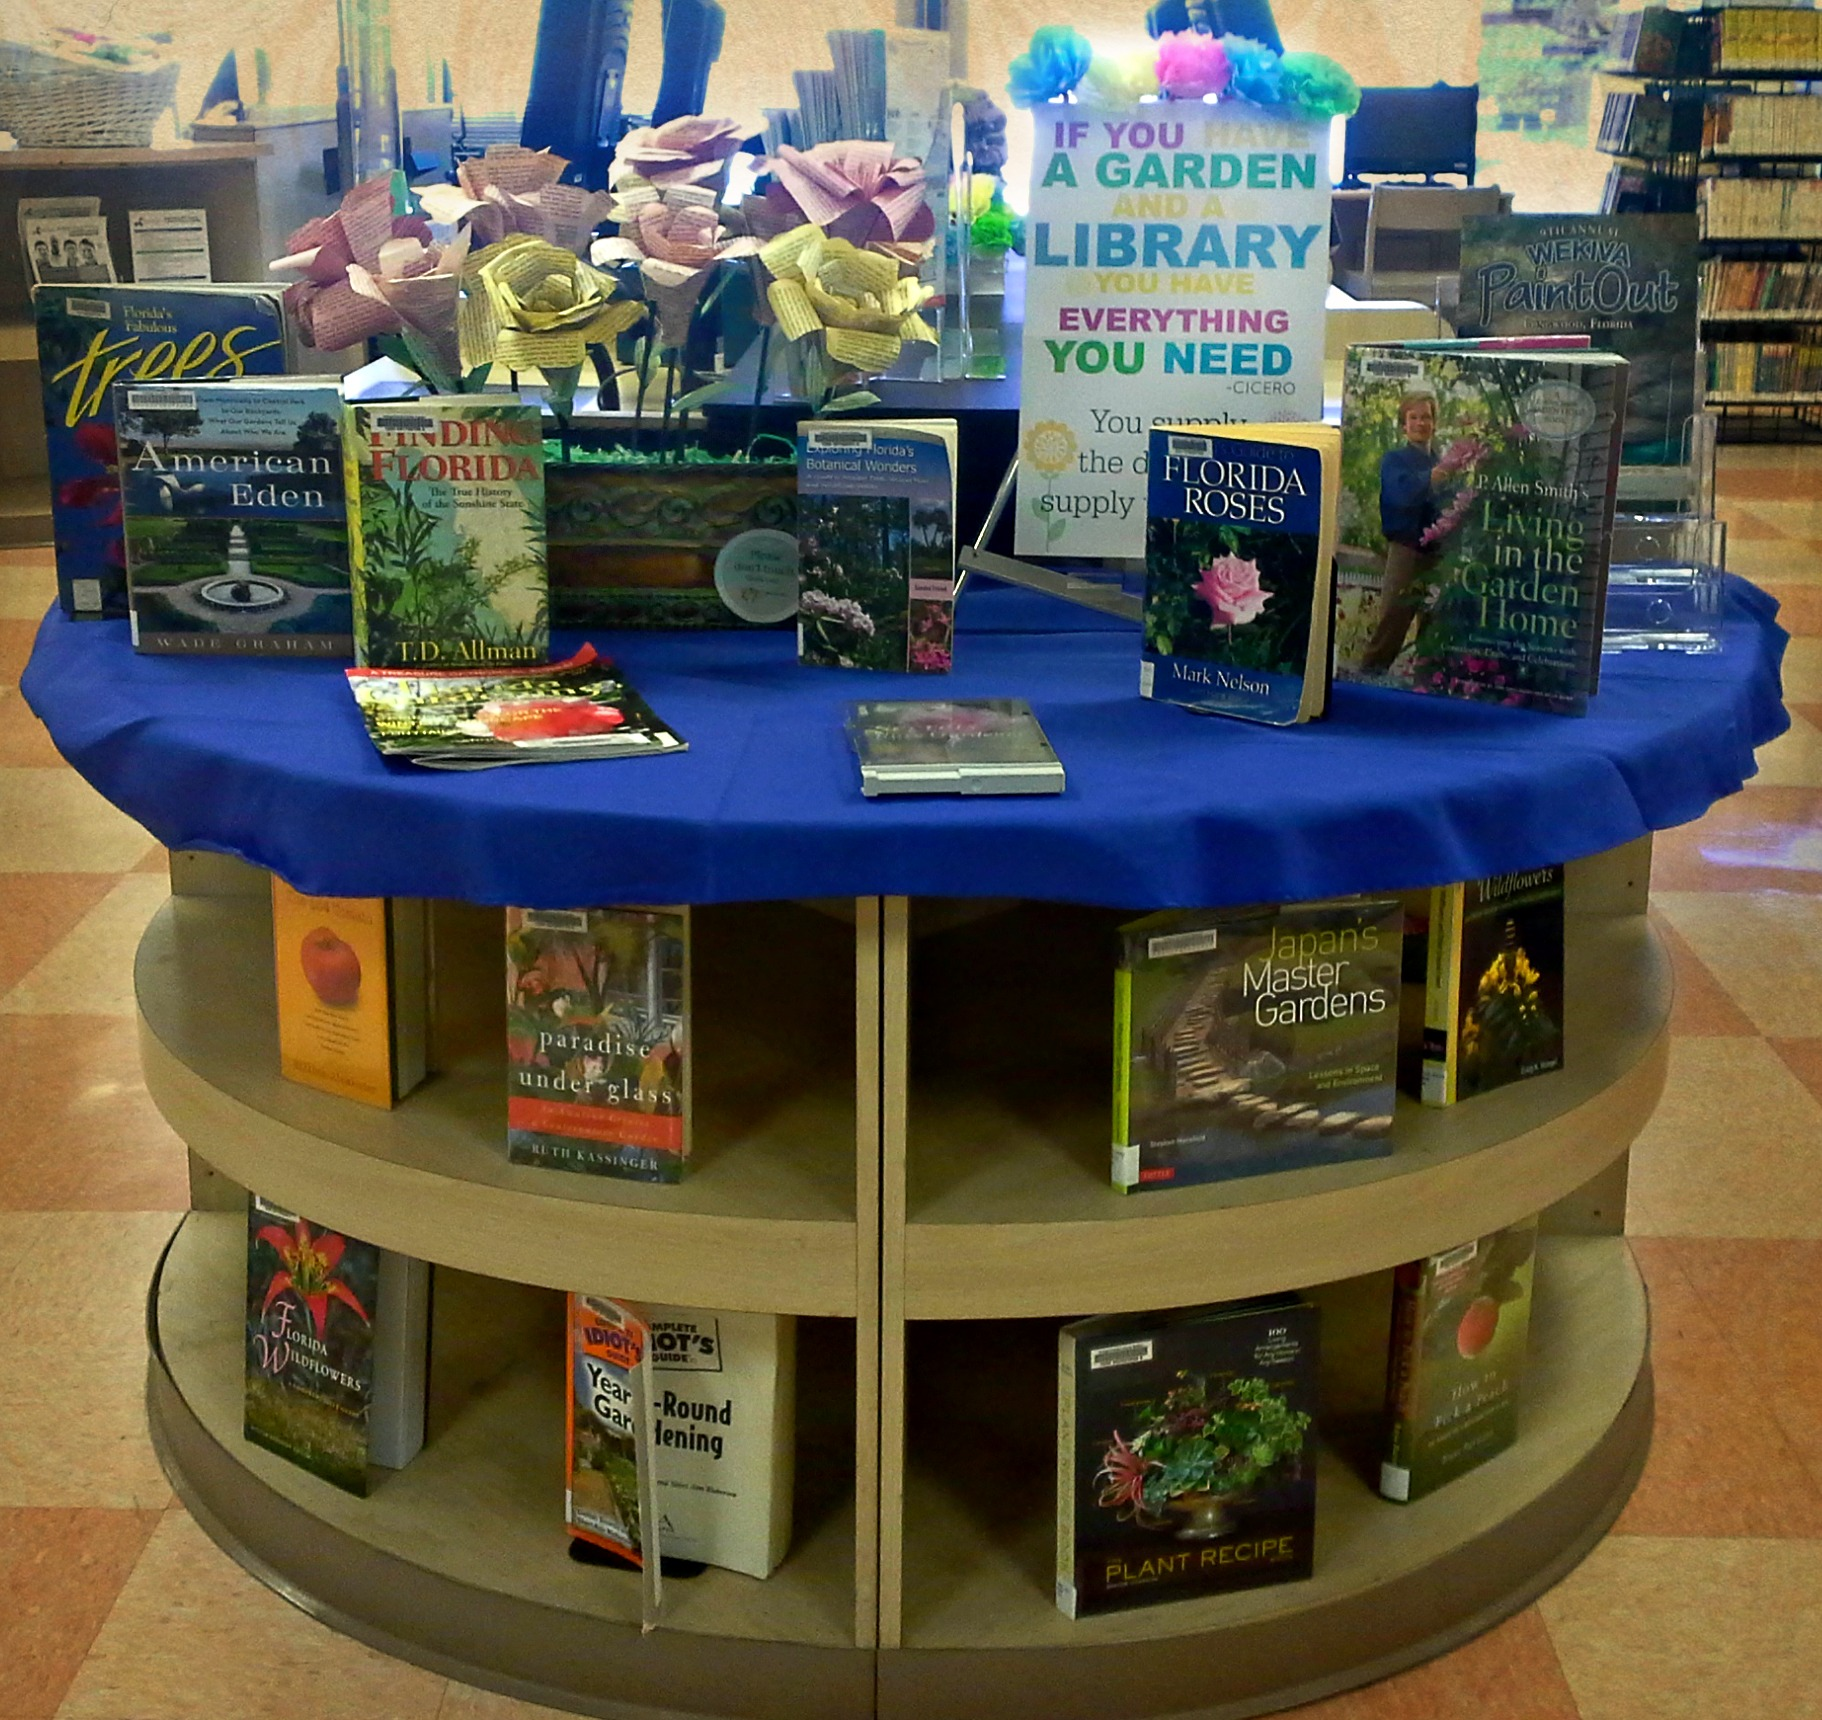 Spring gardening library display